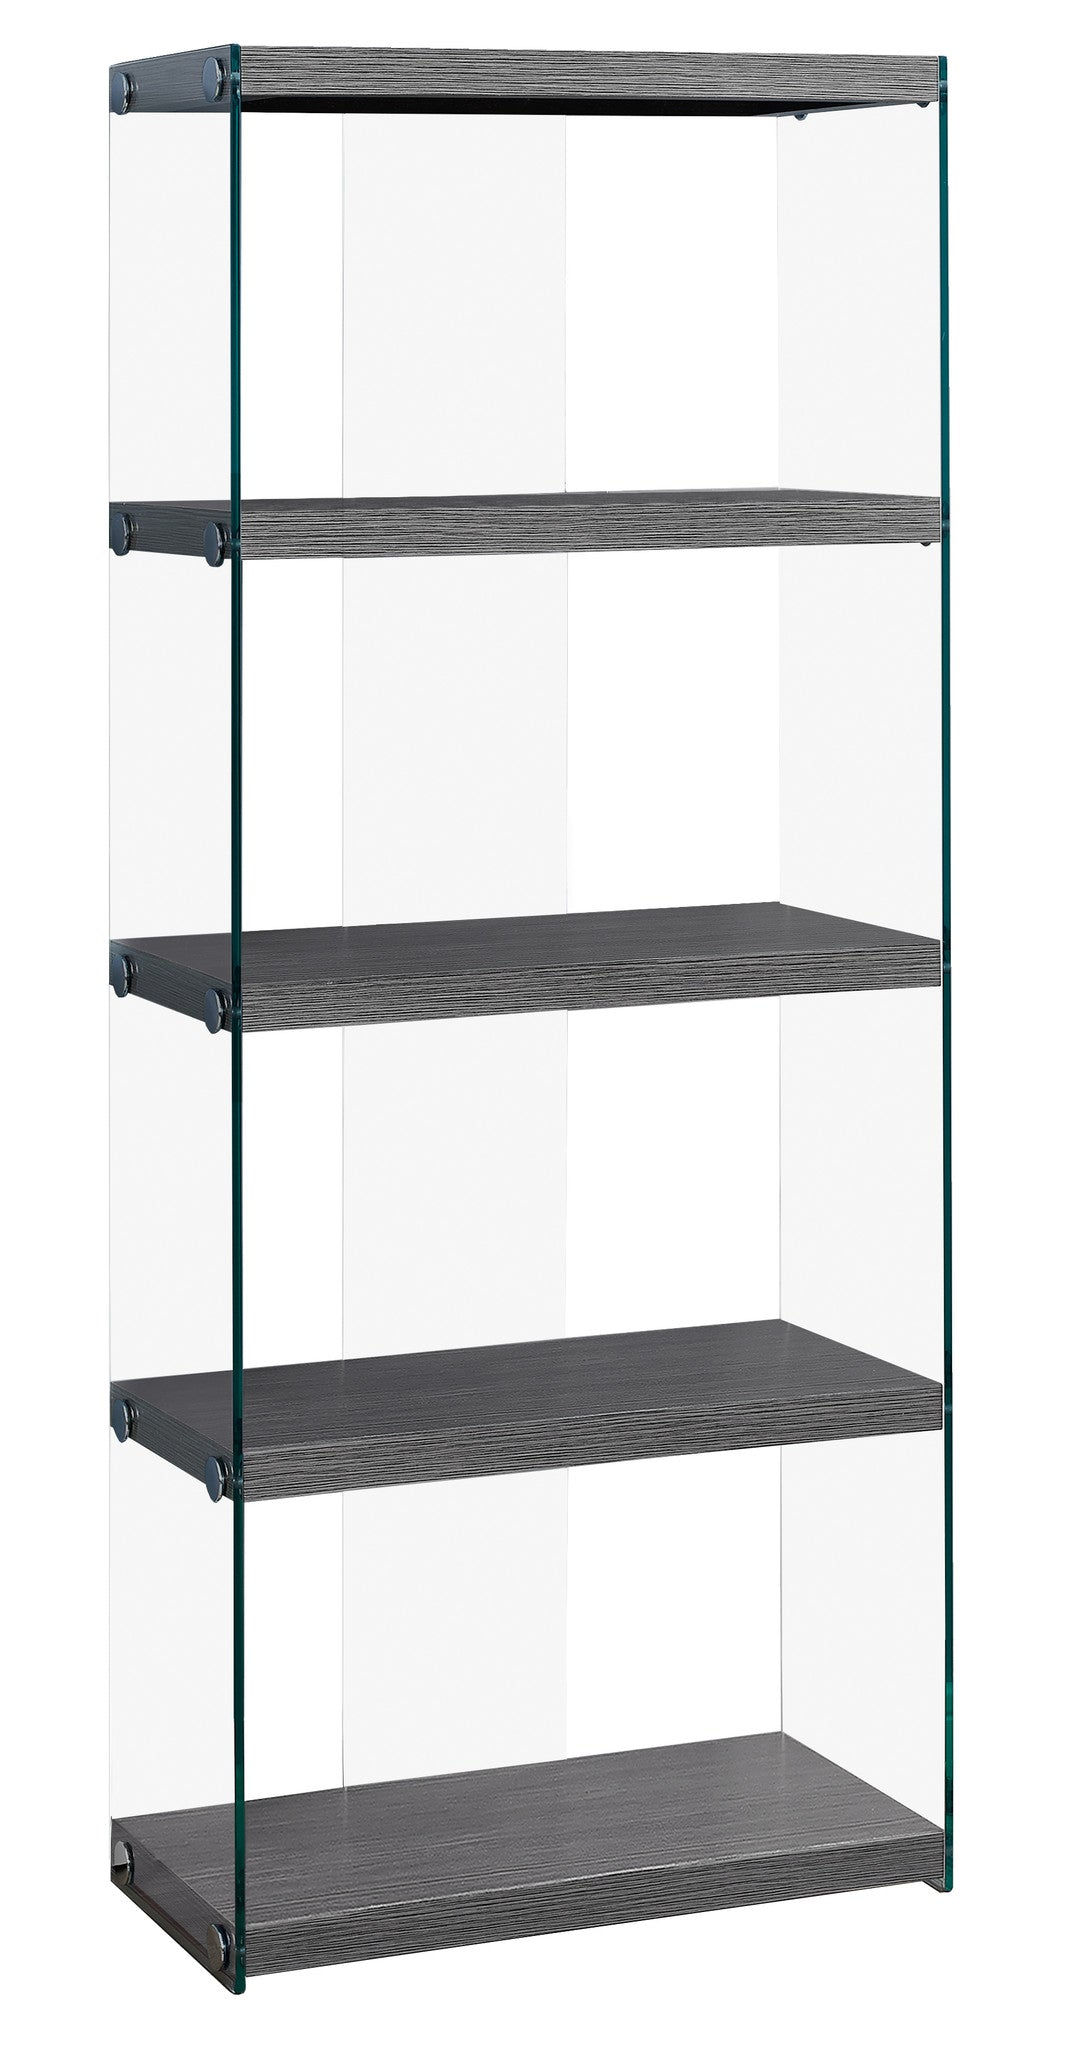 "60""H Grey Bookcase with Tempered Glass by Monarch Specialties Inc. - White Background -TheOfficeFurnitureDepot"